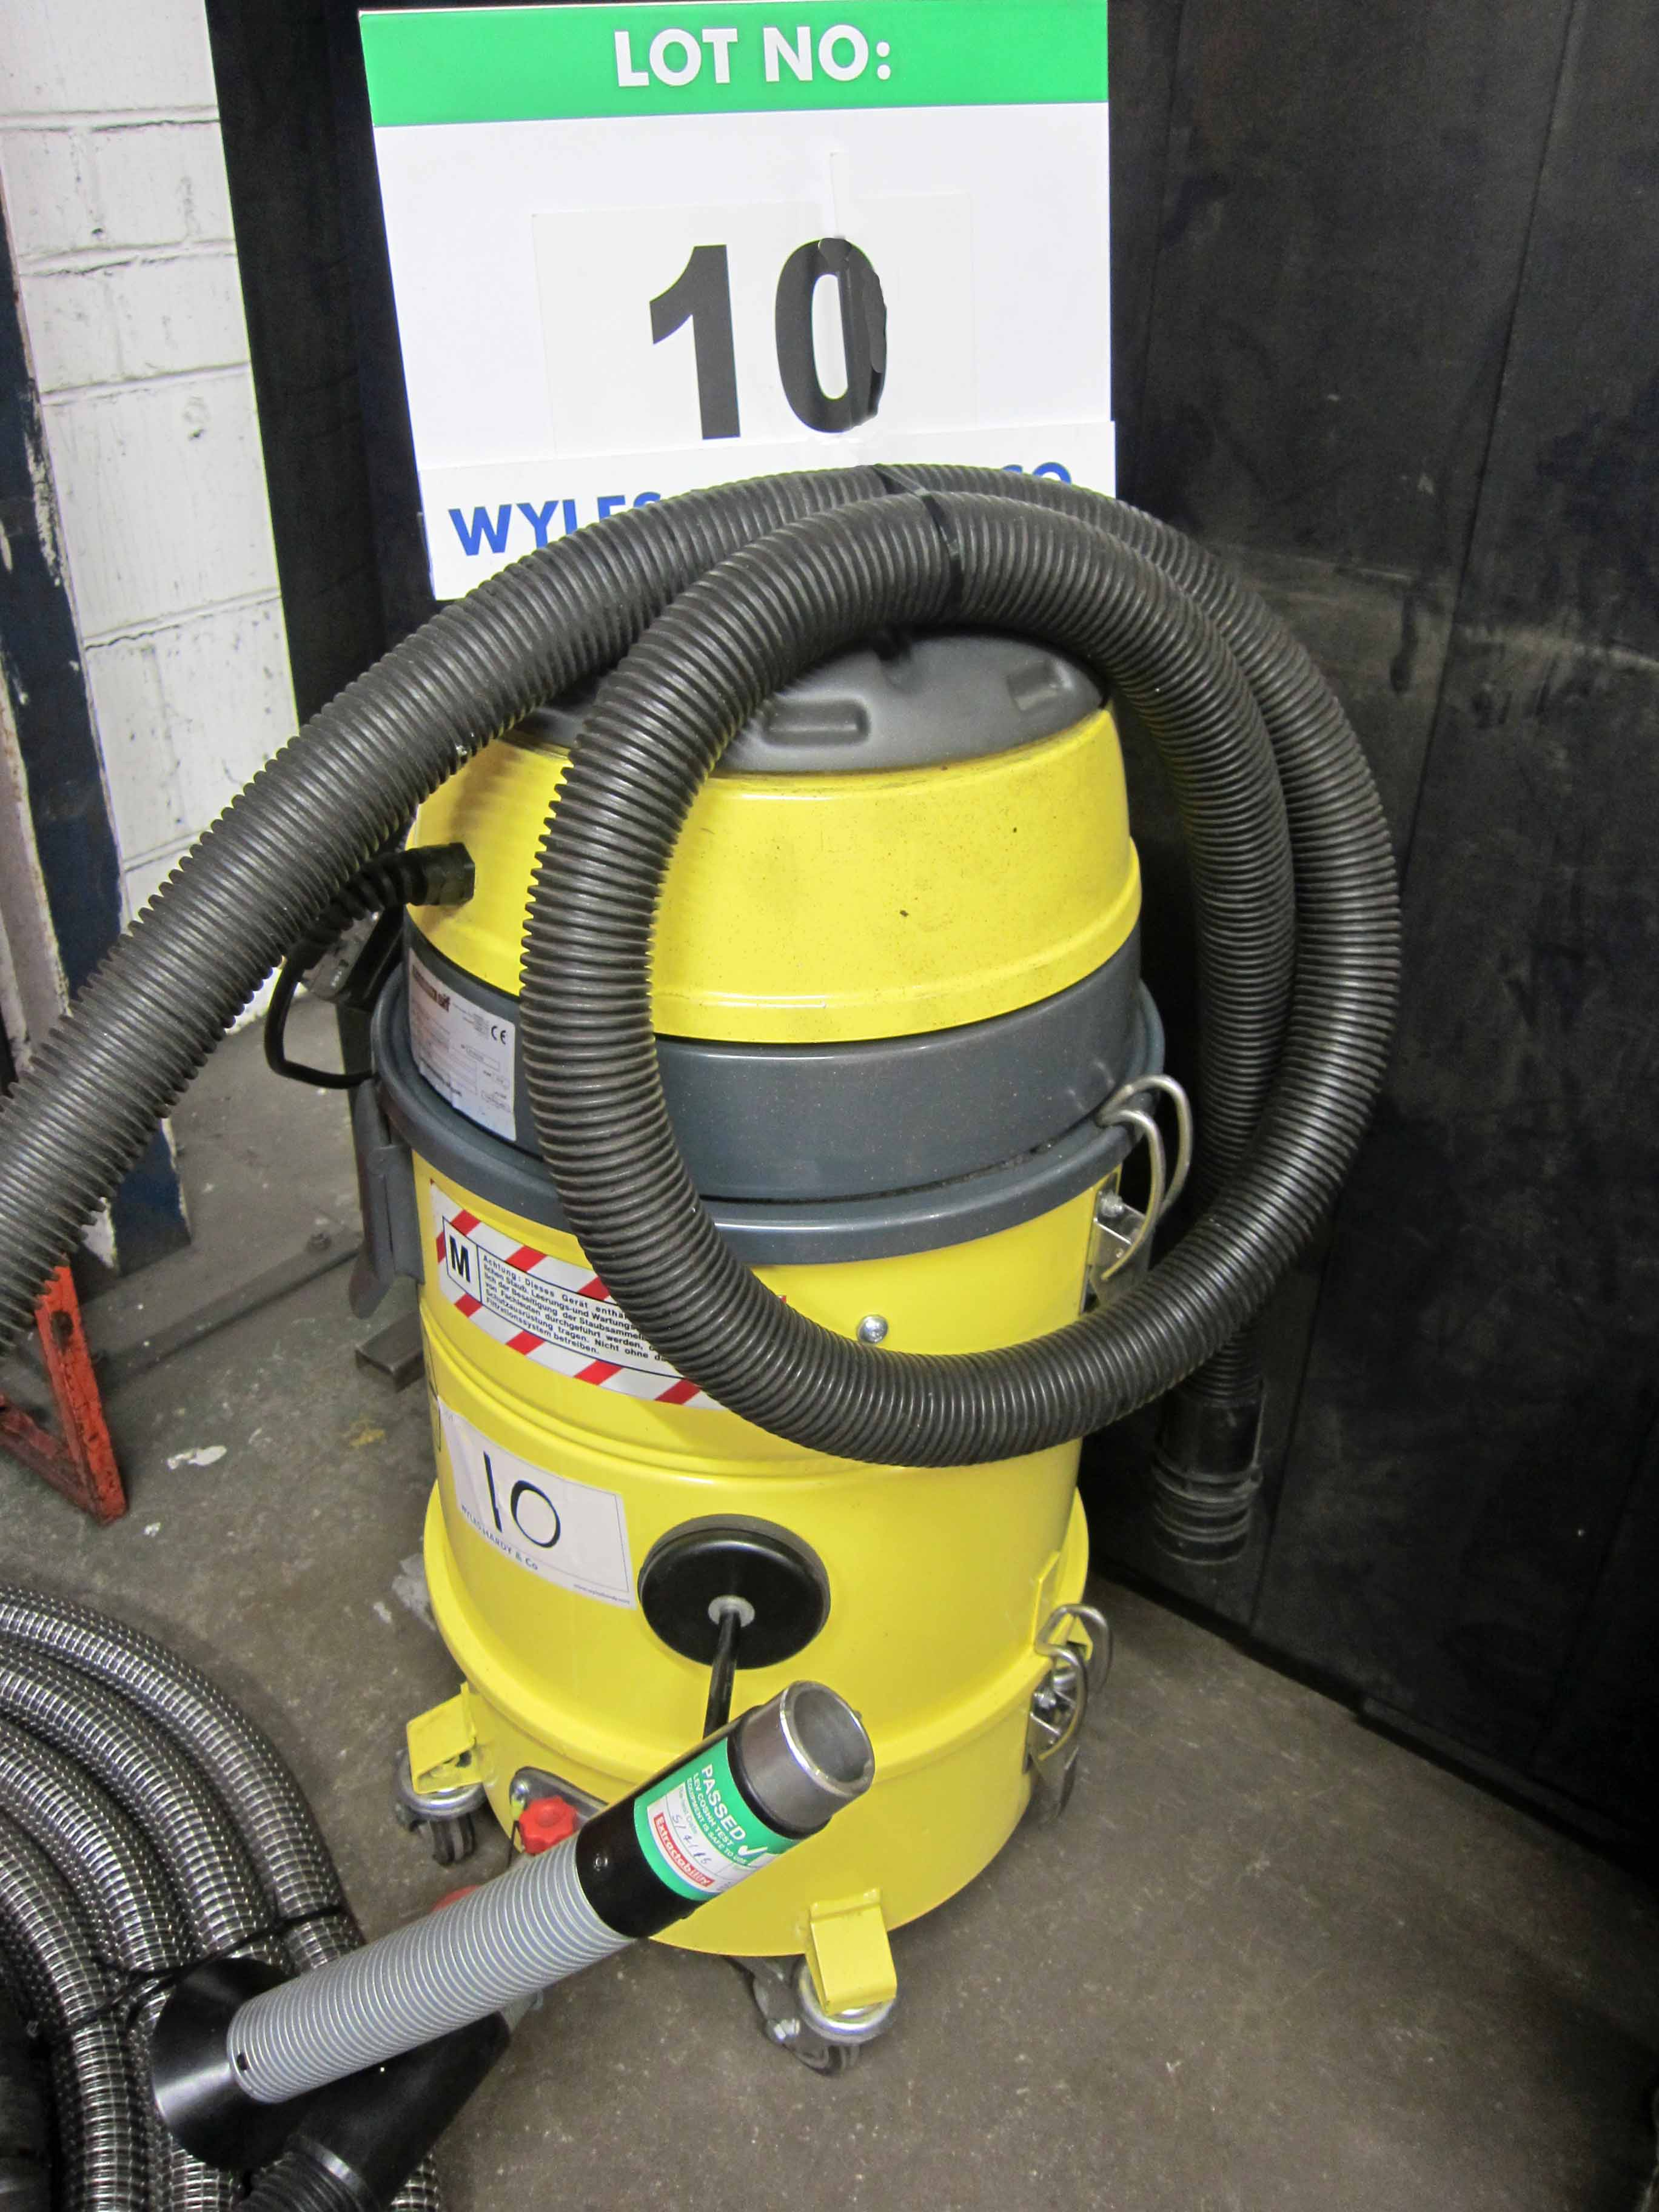 A WELDABILITY SIF Model EXTSVAC 240 240V Mobile Fume Extractor complete with F-TECH Fume